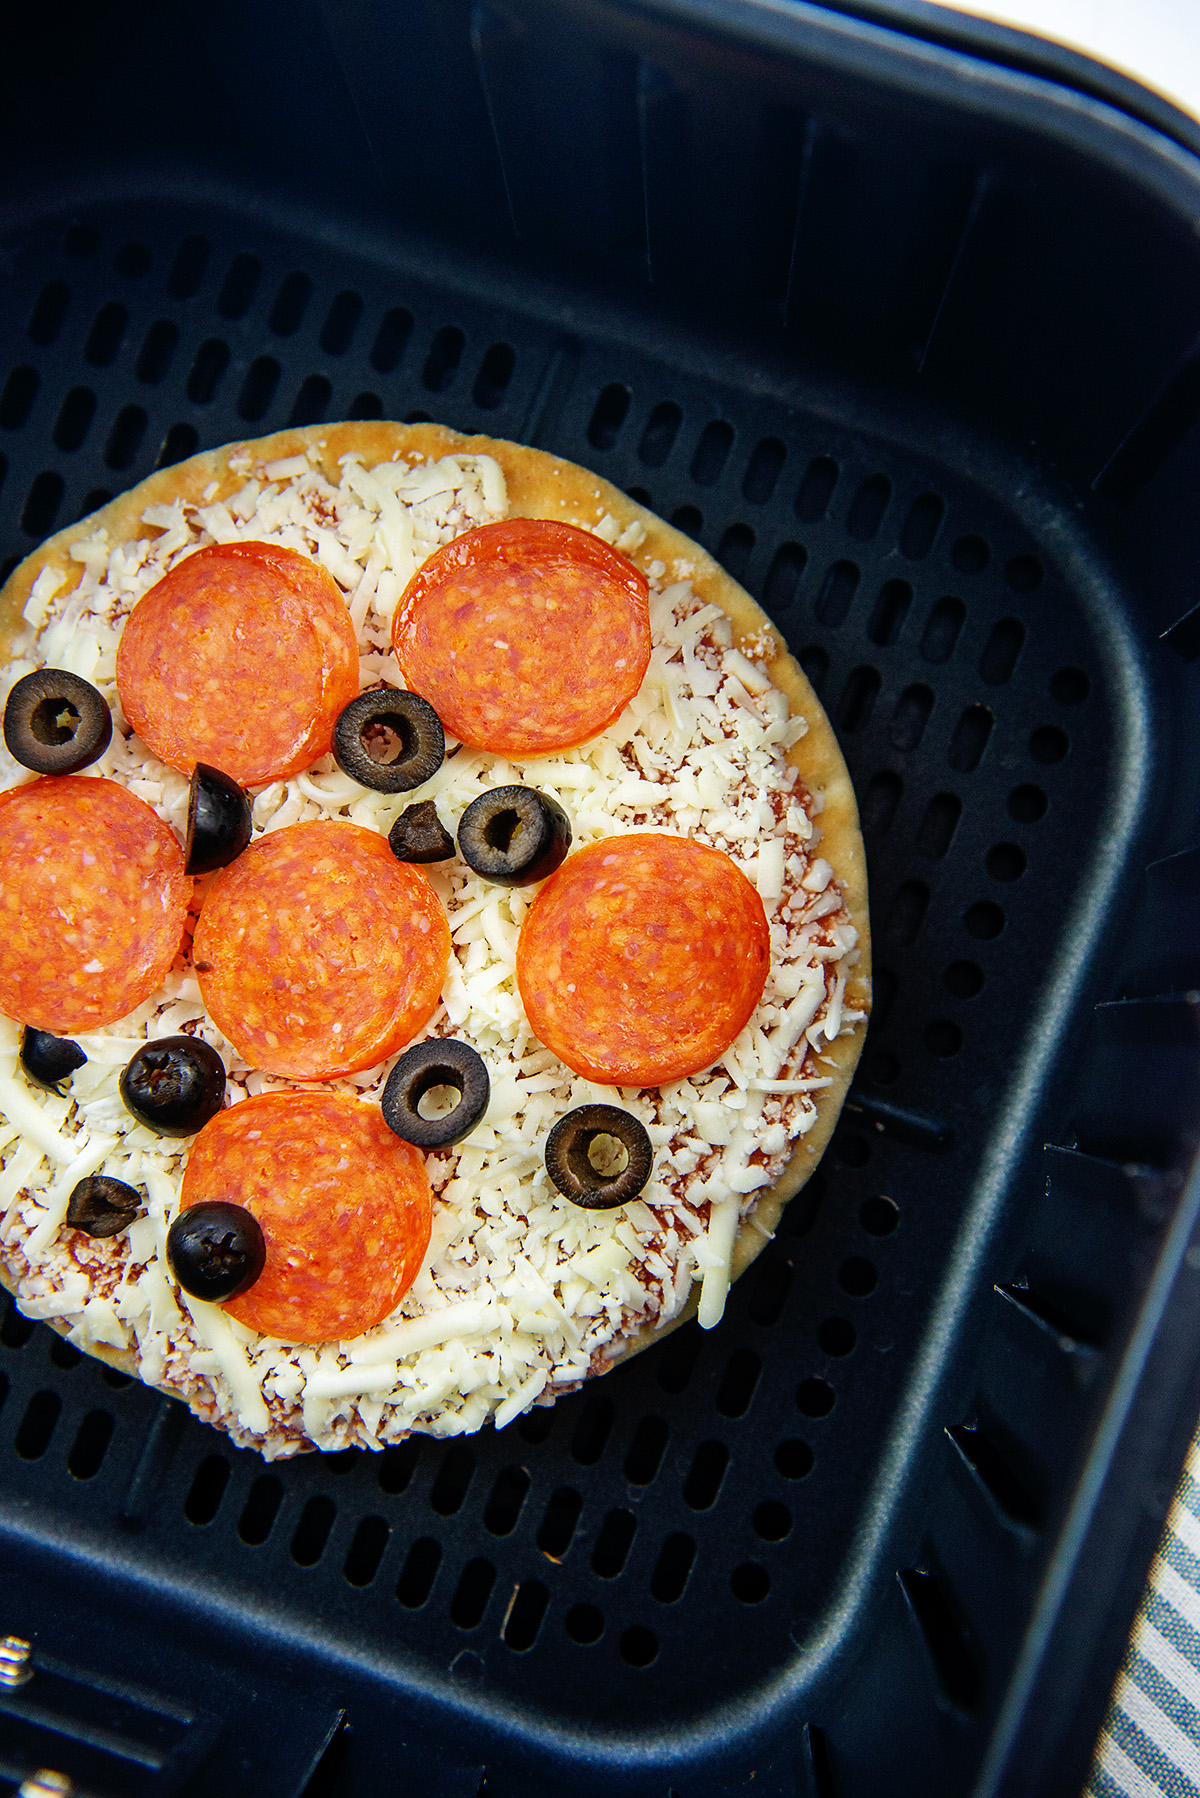 Overhead view of a raw pizza in an air fryer basket.